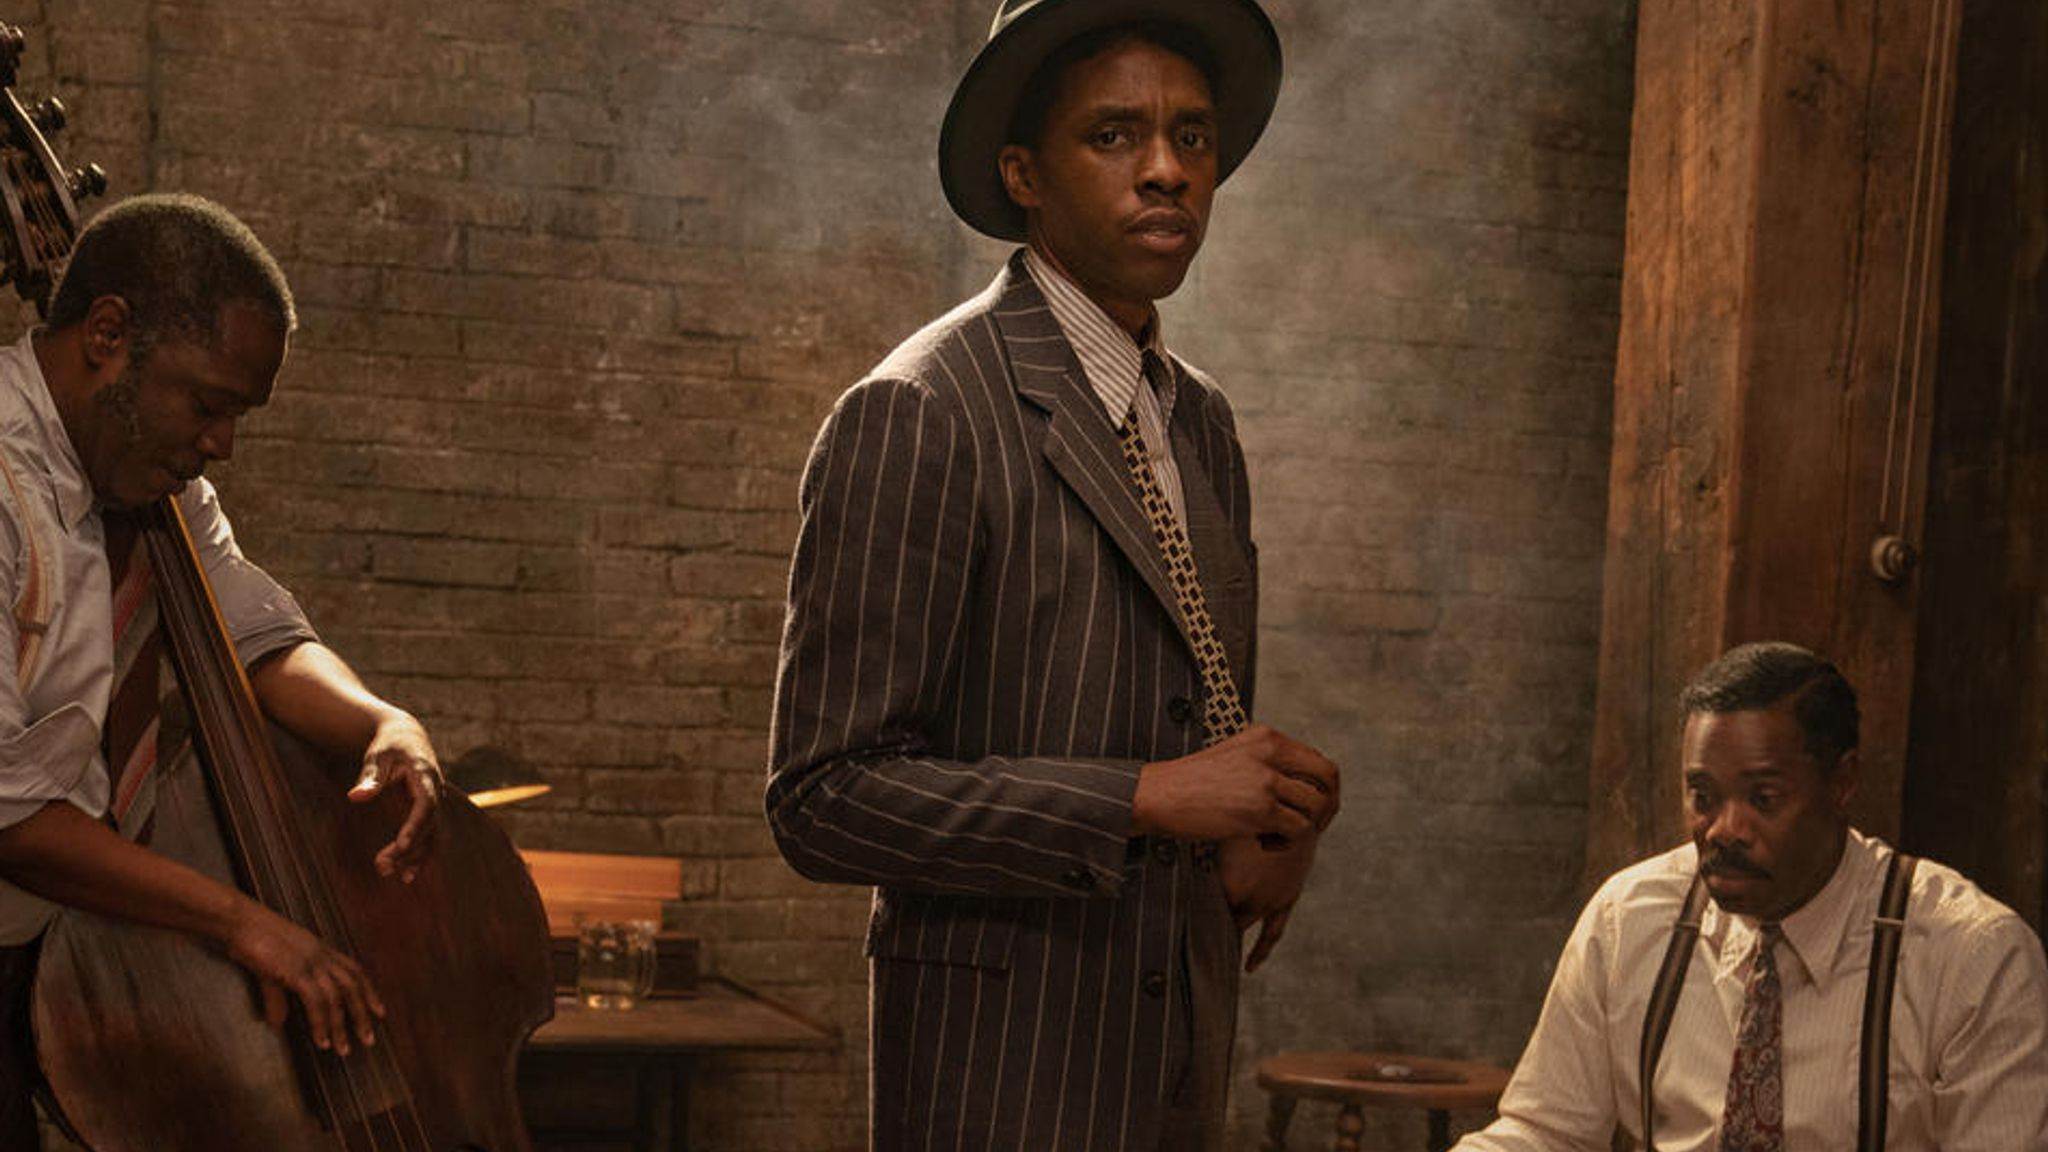 Ma Rainey's Black Bottom will release on 18th December 2020